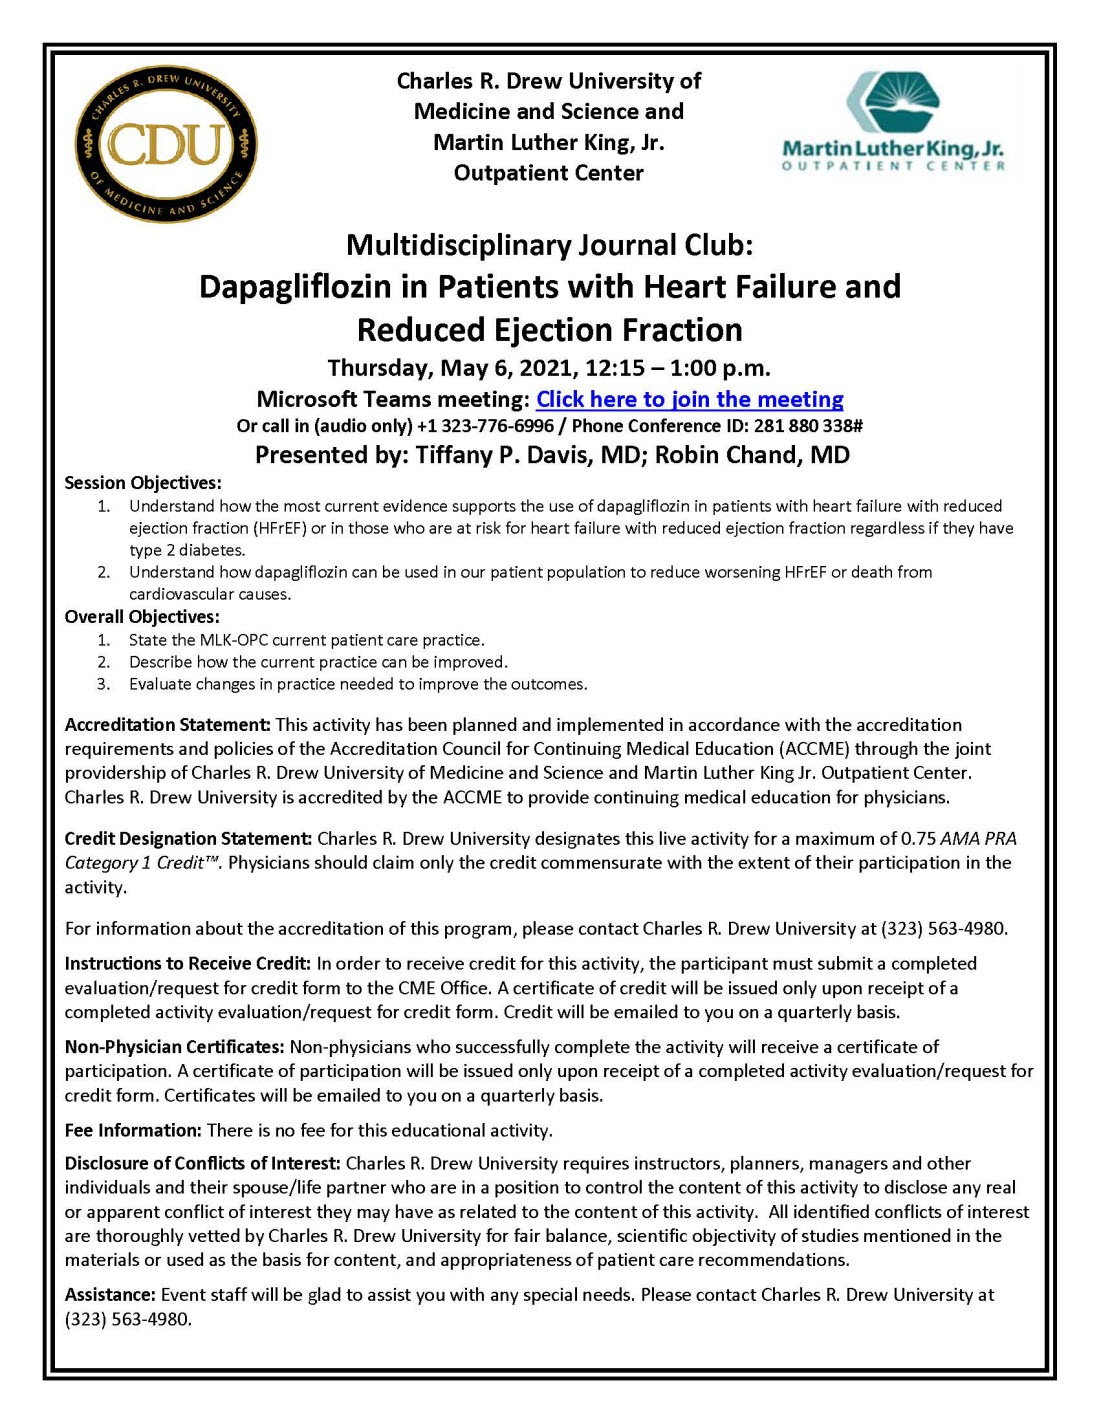 In Addition to FNLS - Multidisciplinary Journal Club: Dapagliflozin in Patients with Heart Failure and Reduced Ejection Fraction